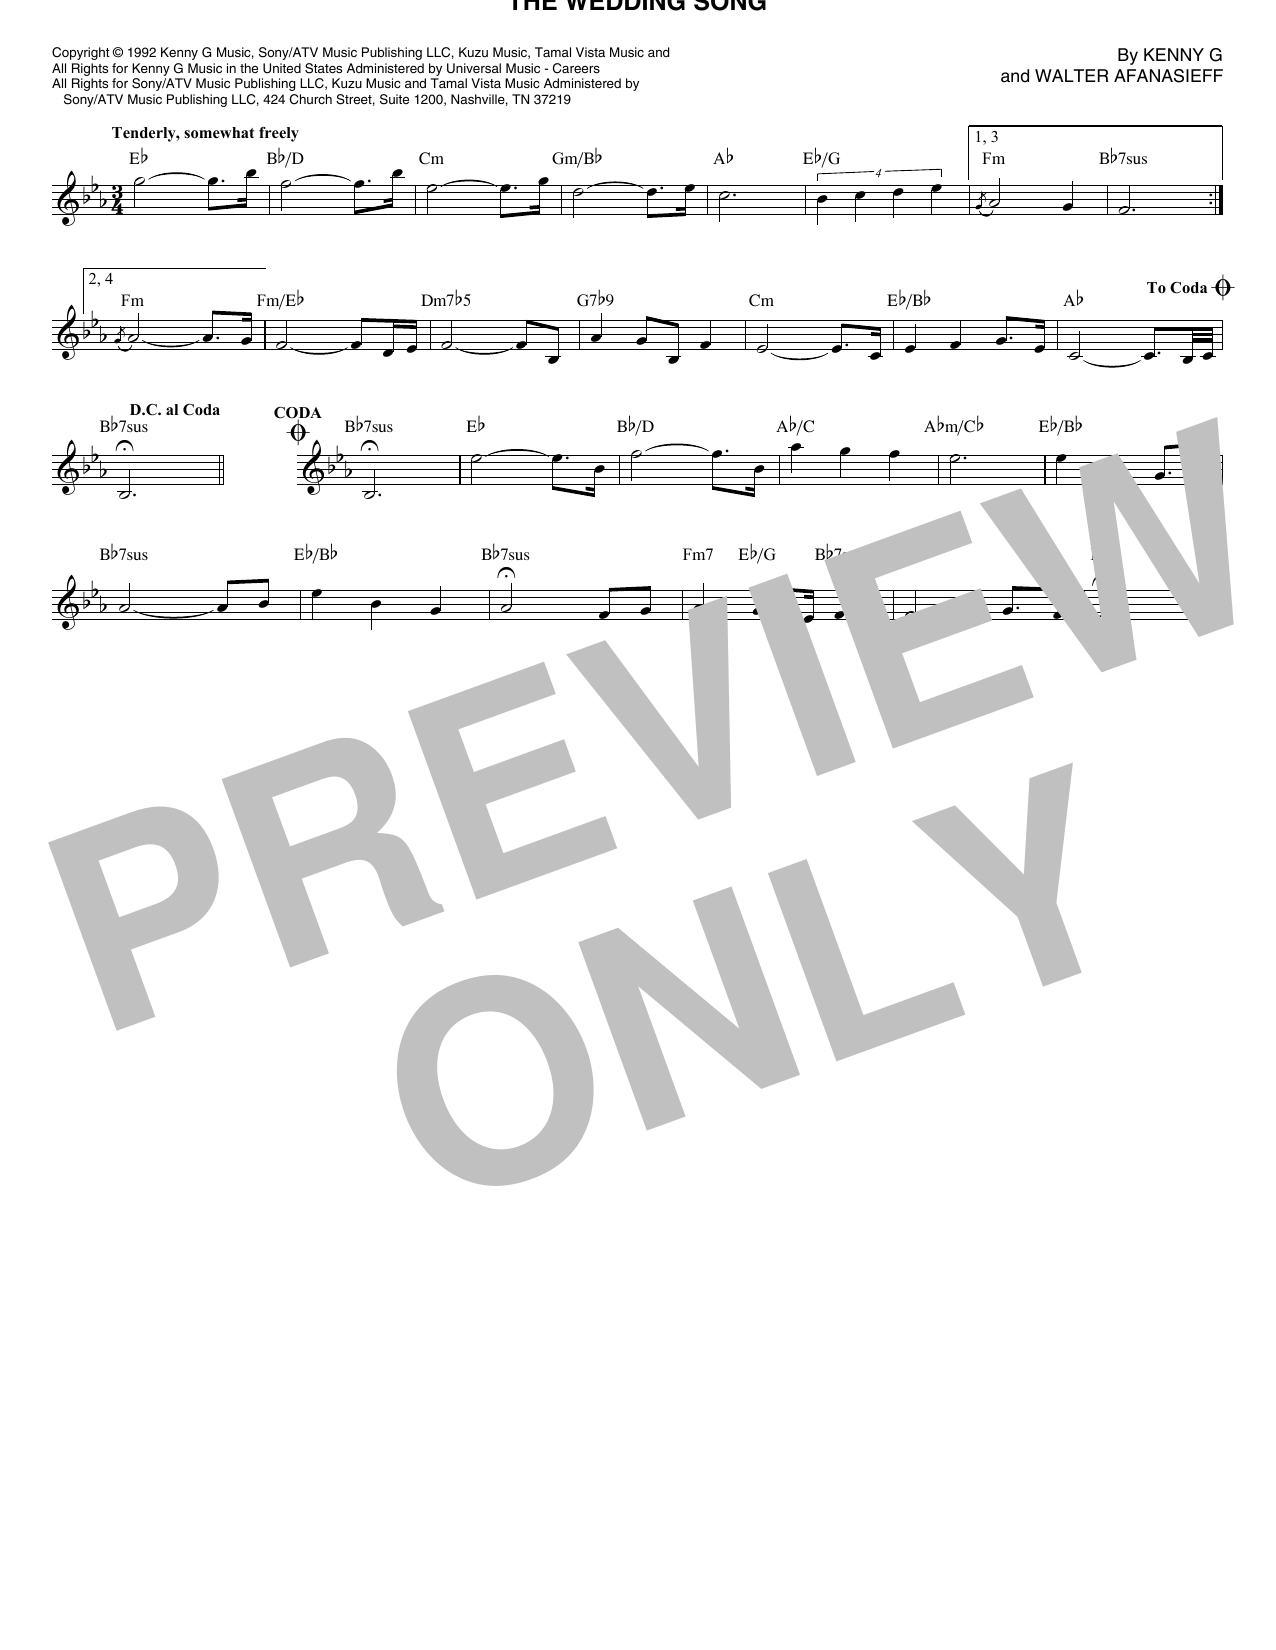 The Wedding Song (Lead Sheet / Fake Book)